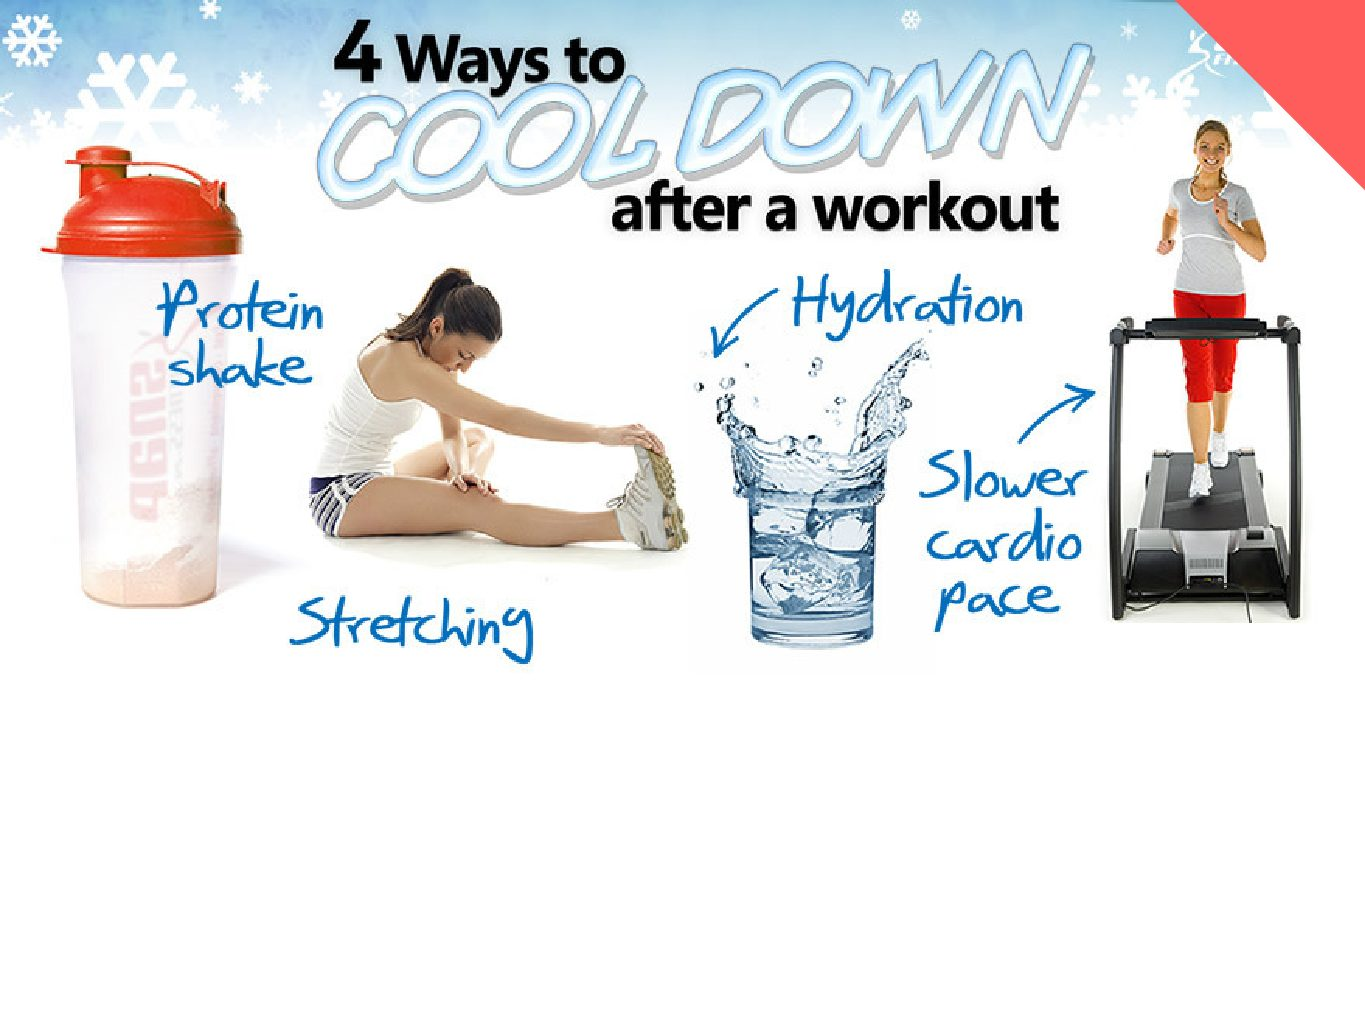 Cooling Down After a Workout